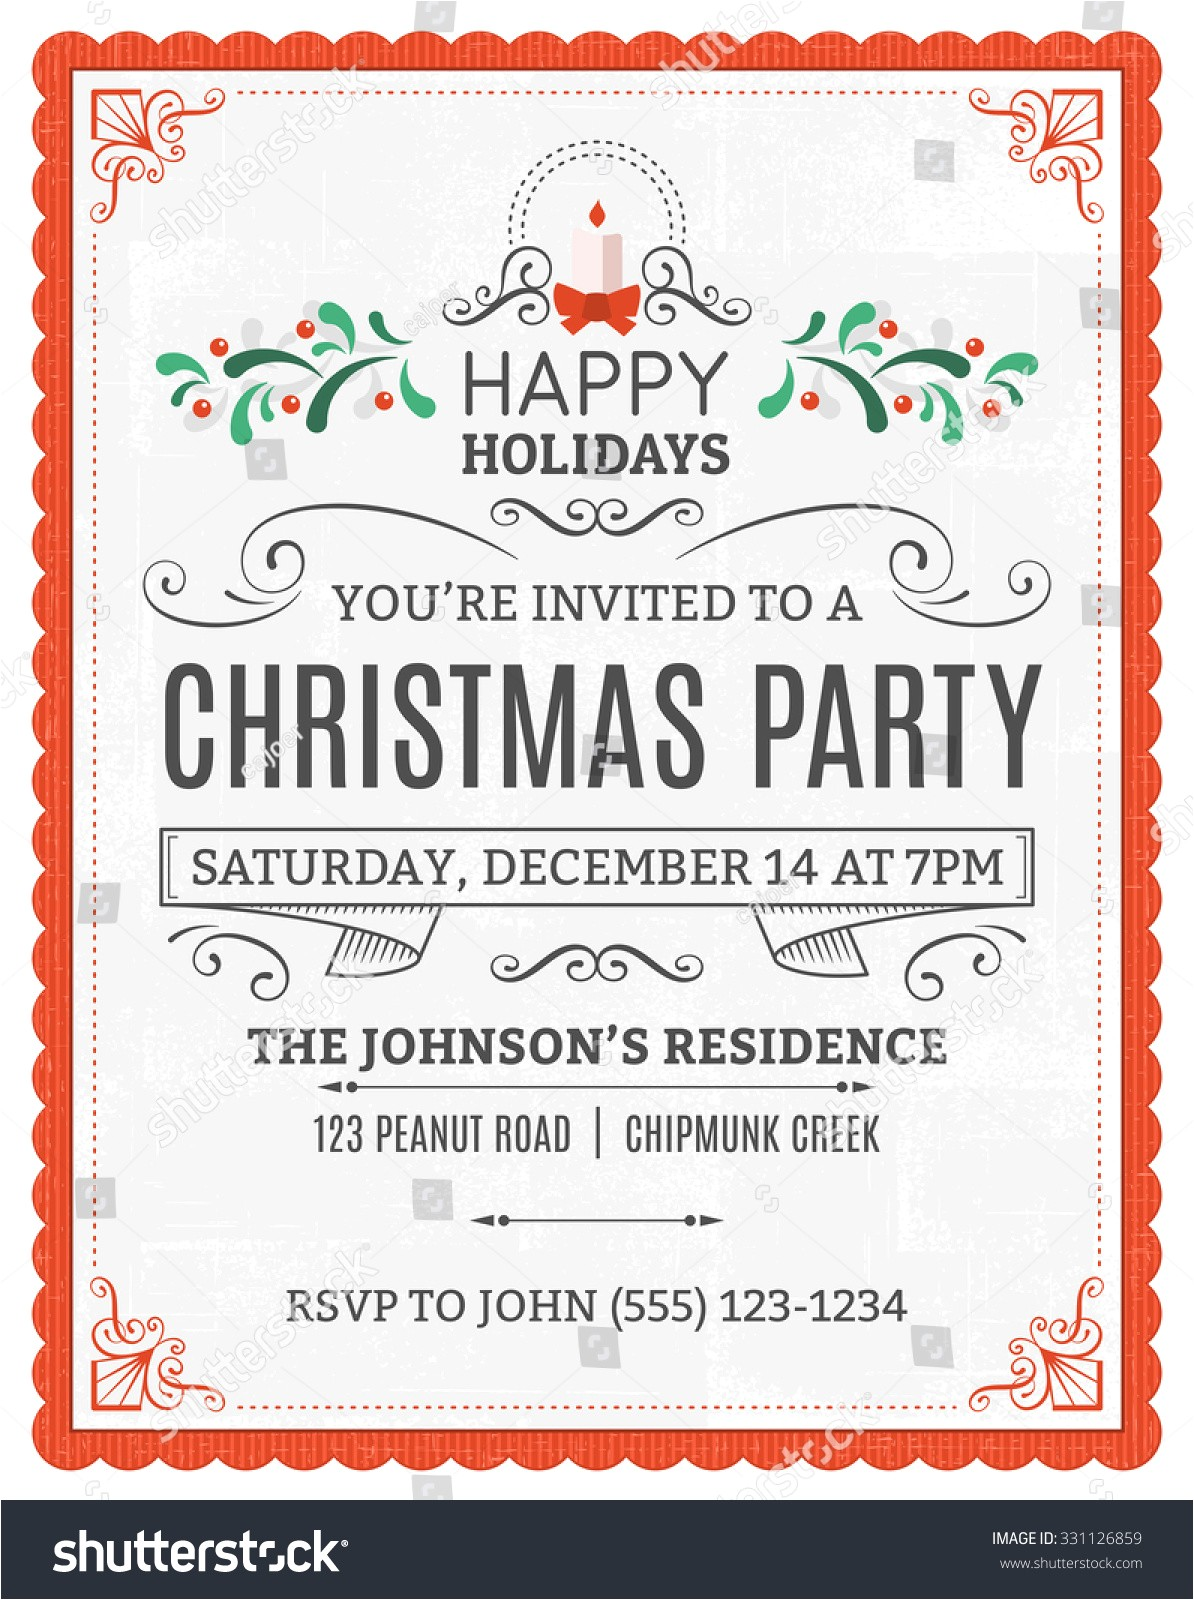 stock vector vector christmas party invitation dummy text is on a separate layer for easy removal only solid